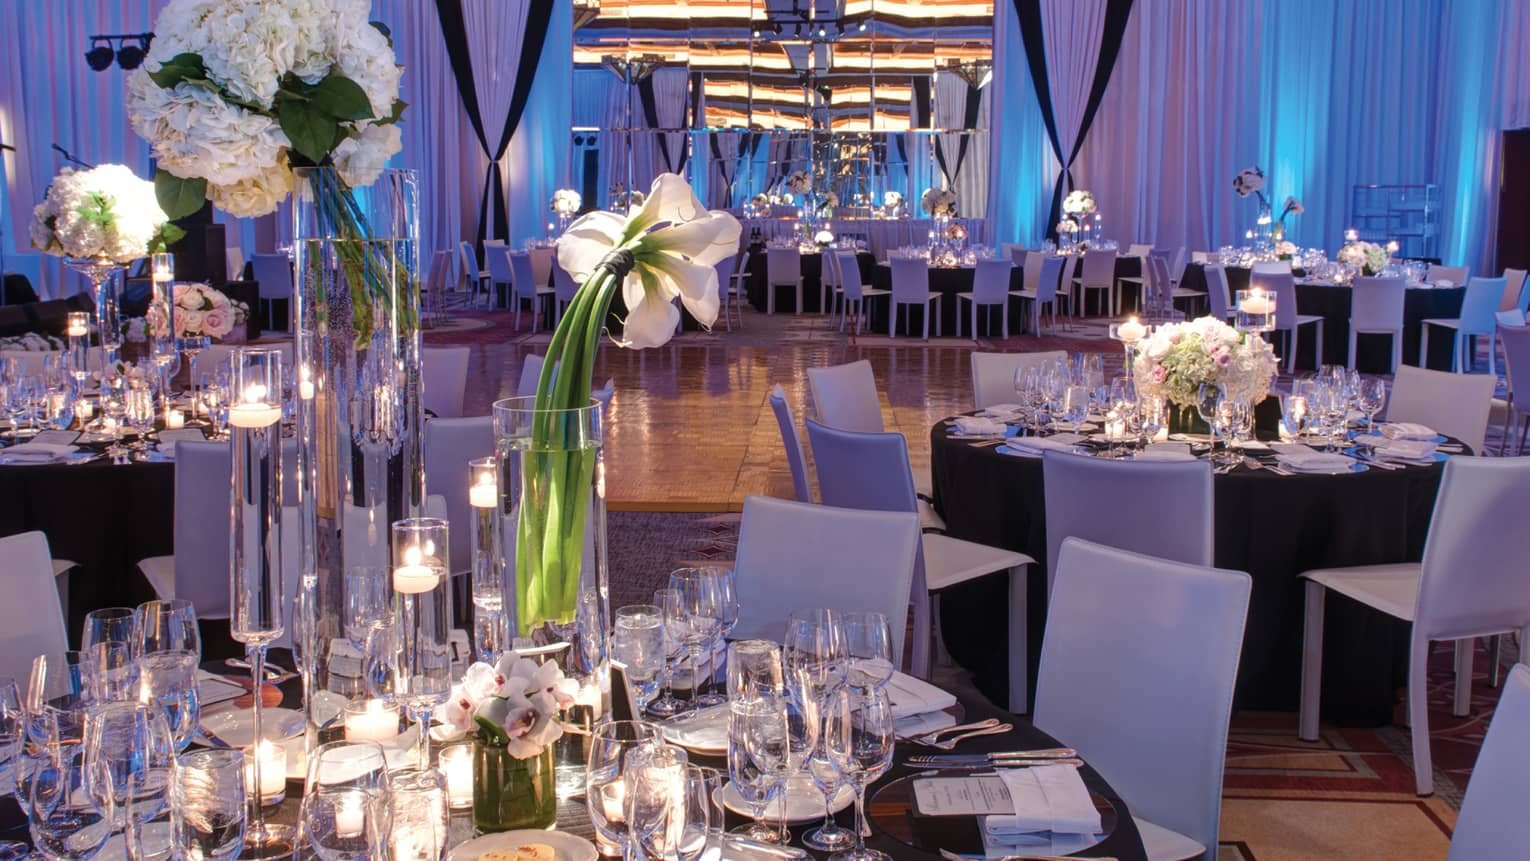 Pinnacle Ballroom wedding reception with candle-lit banquet tables, tall white flowers